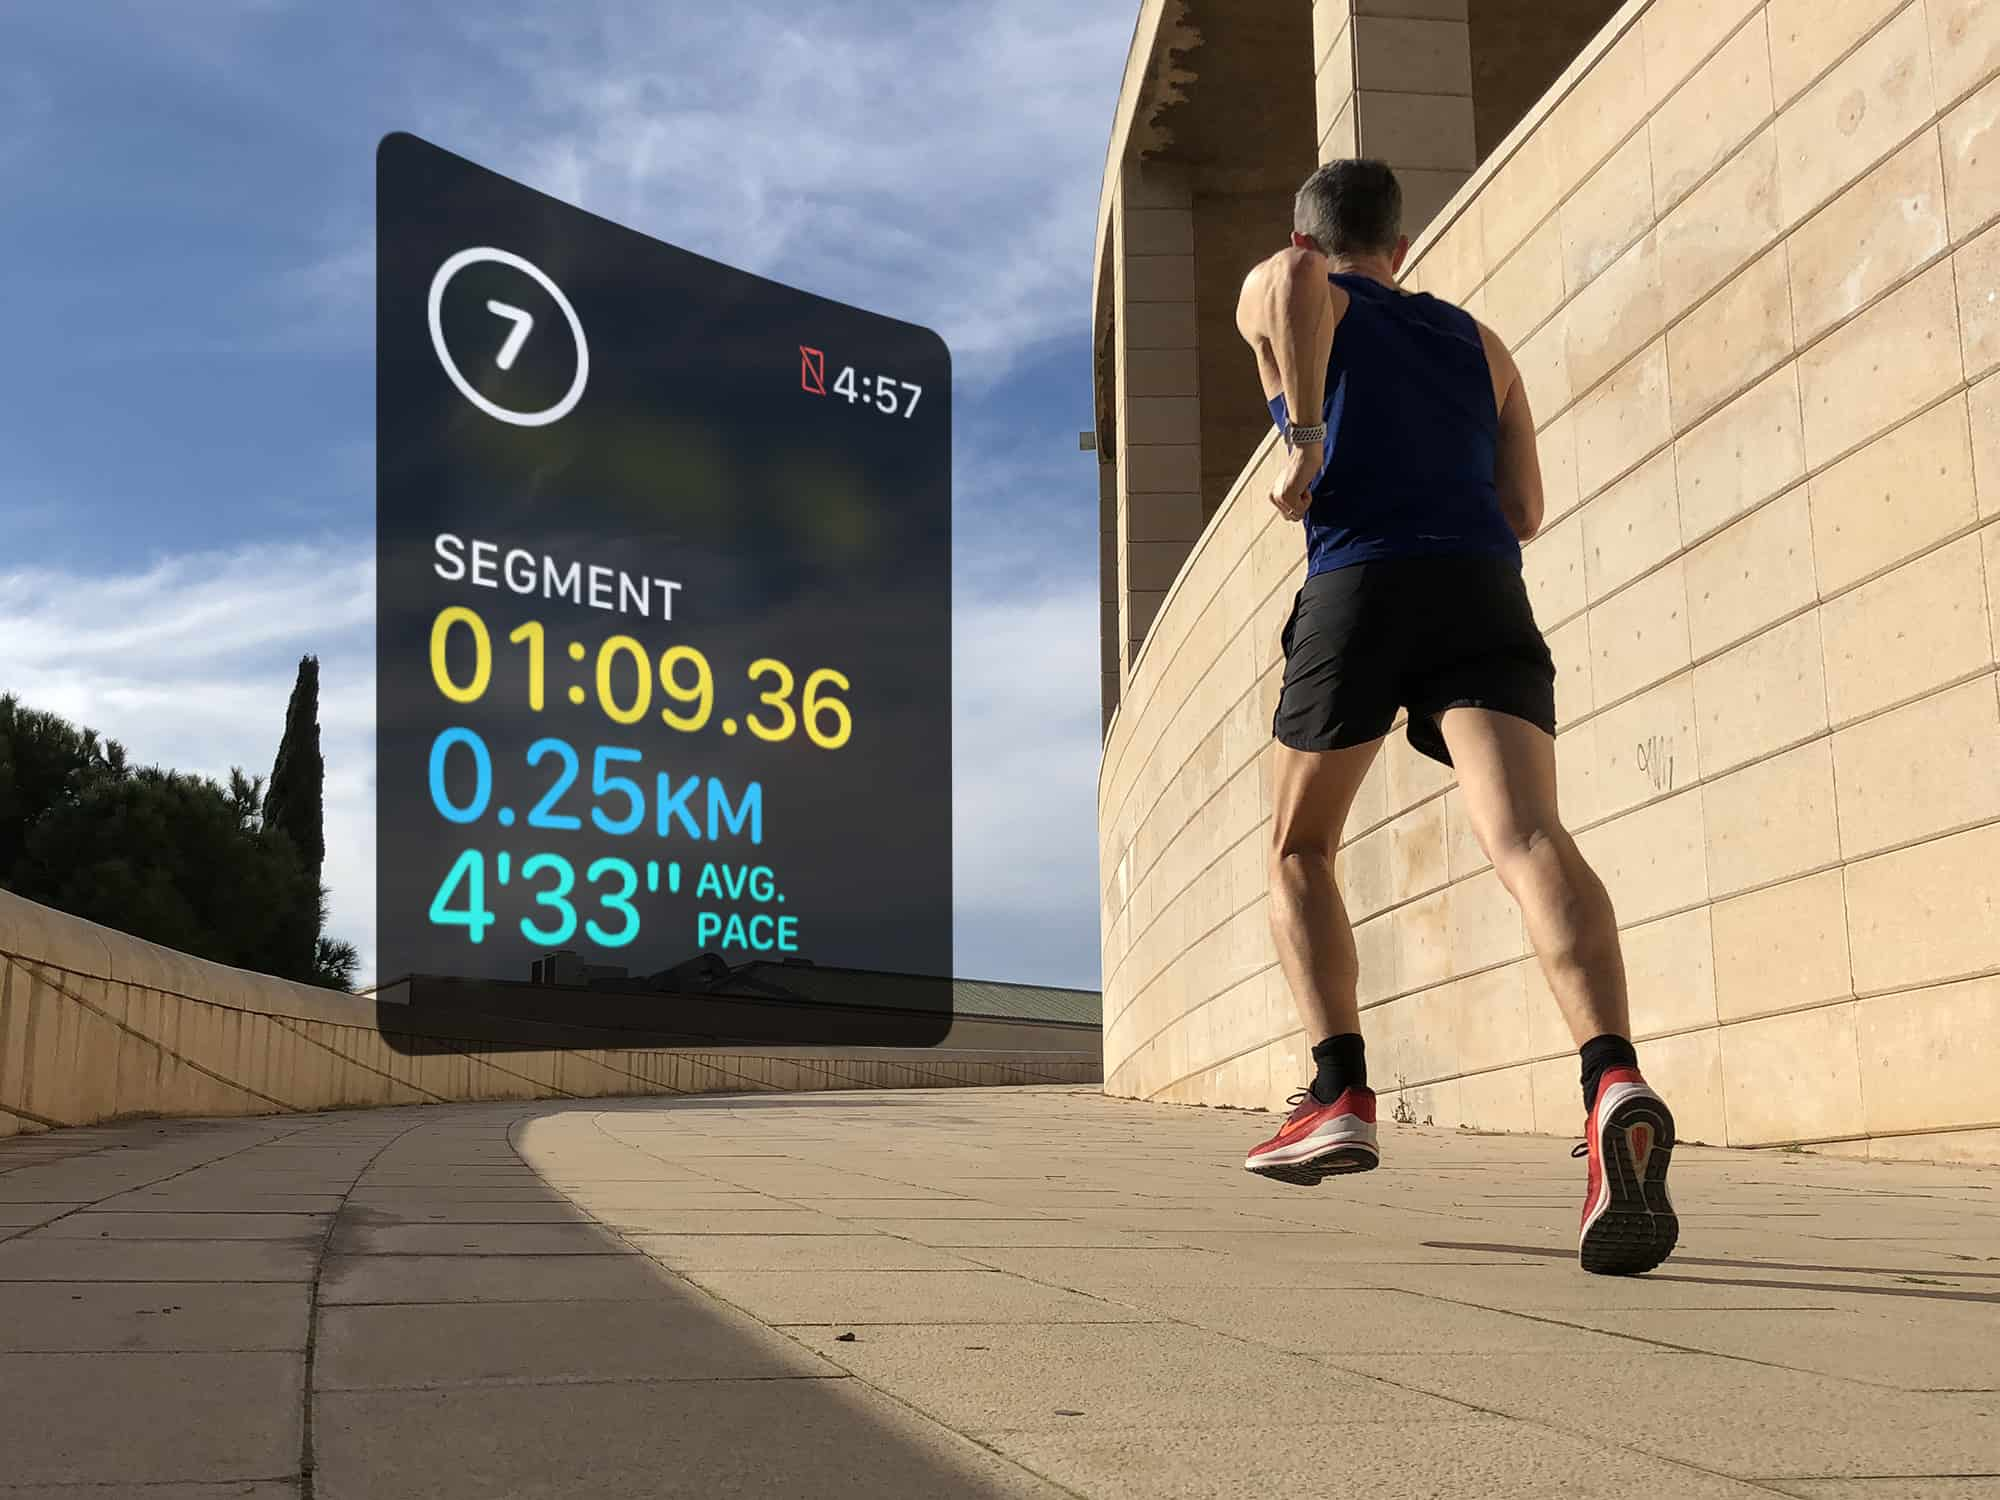 Use segments to log your rest intervals doing HIIT workouts